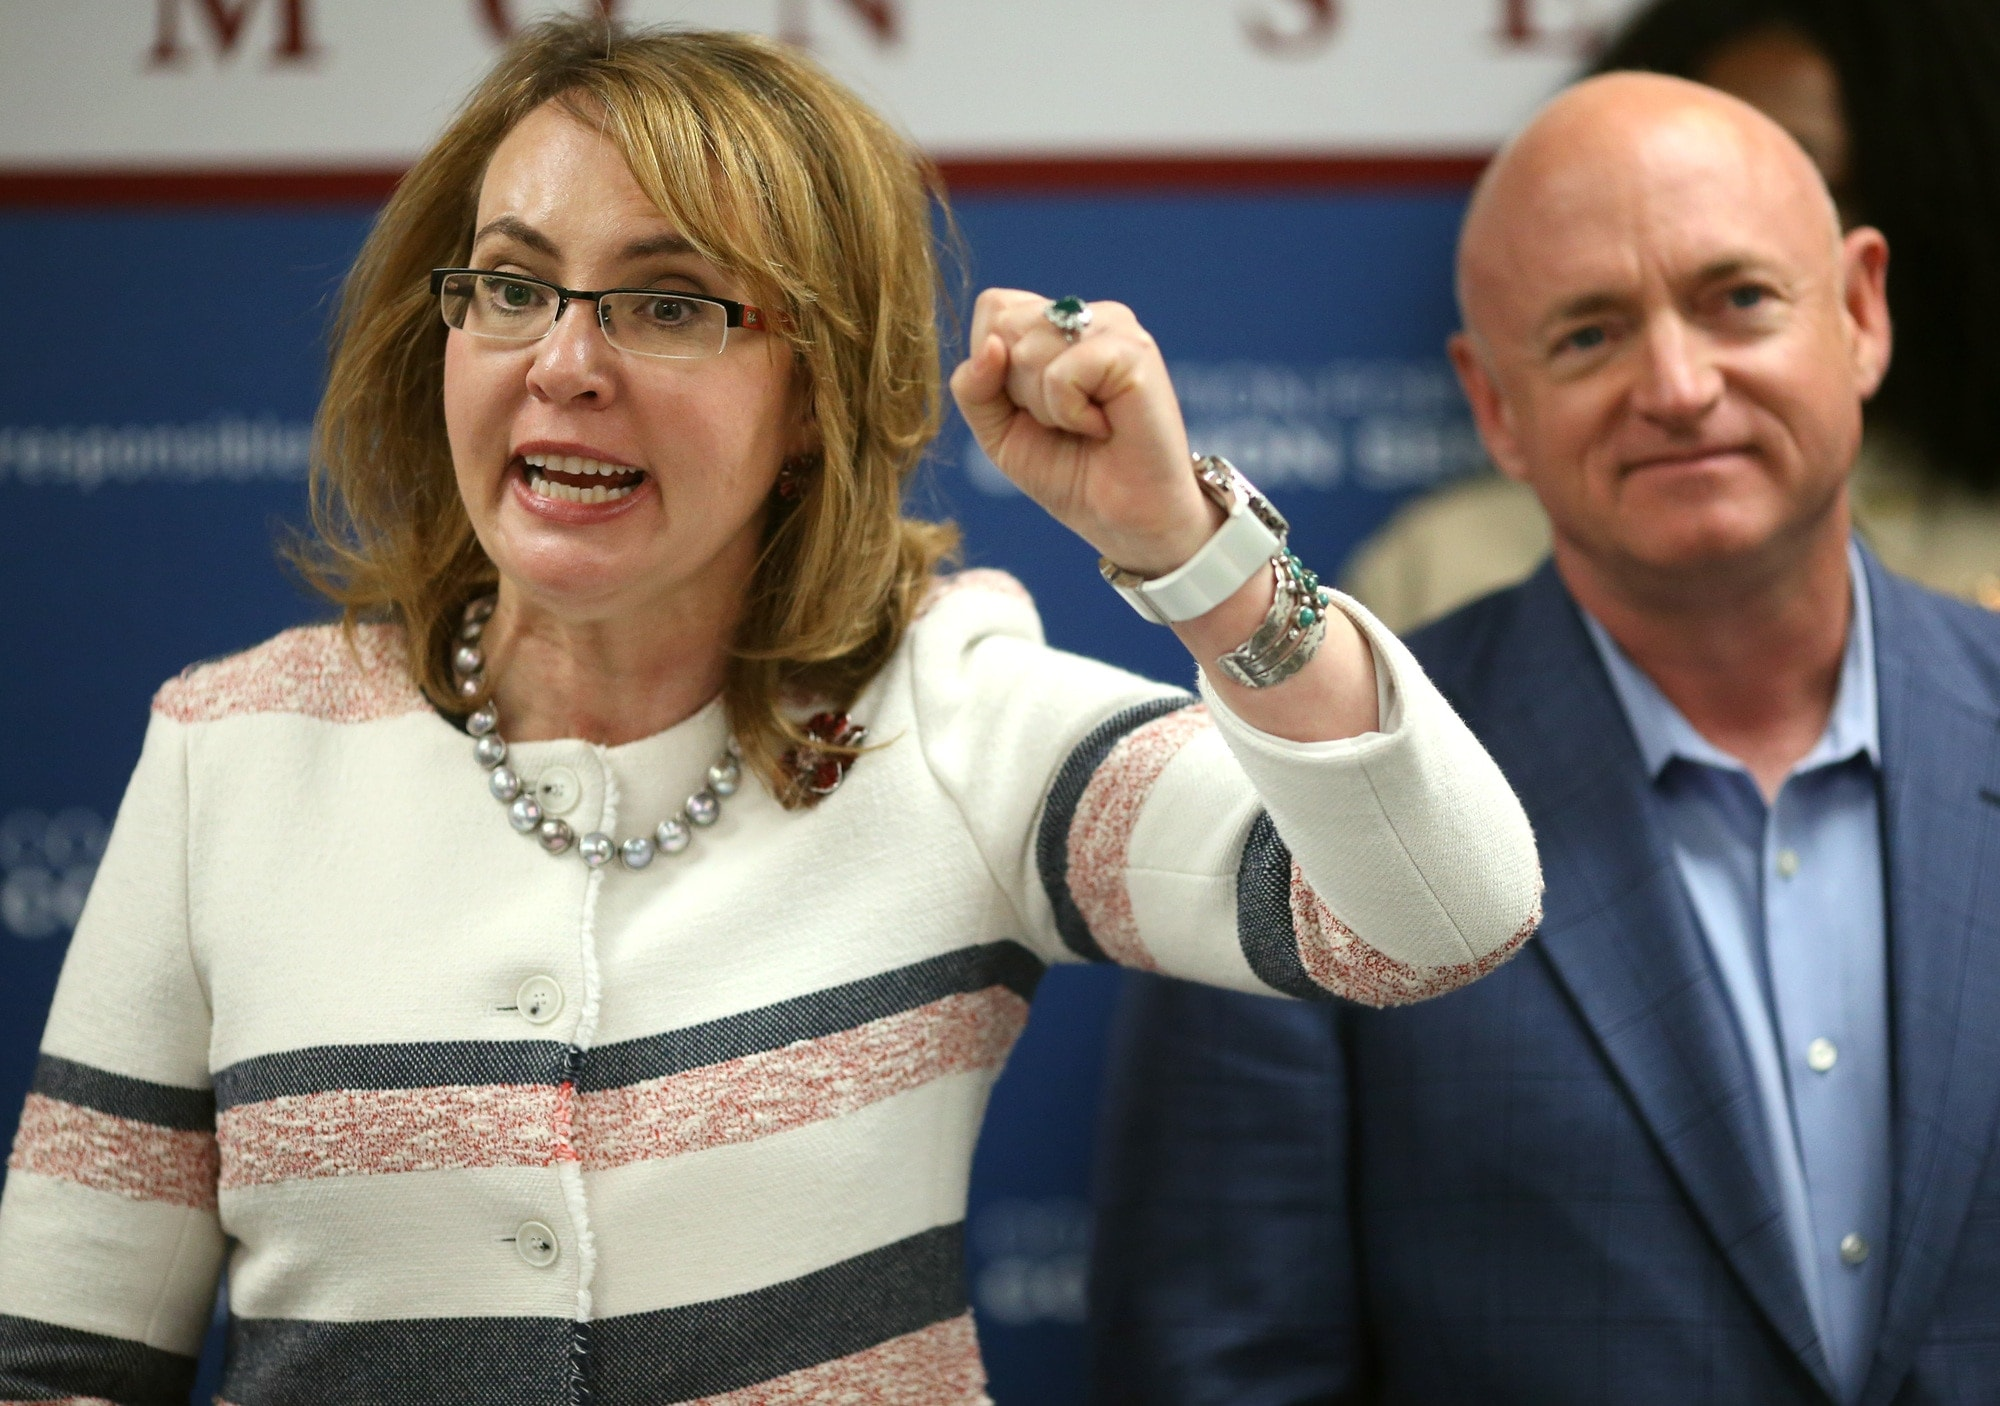 Gabby Giffords opens franchise in Minnesota, 3rd in 3 months